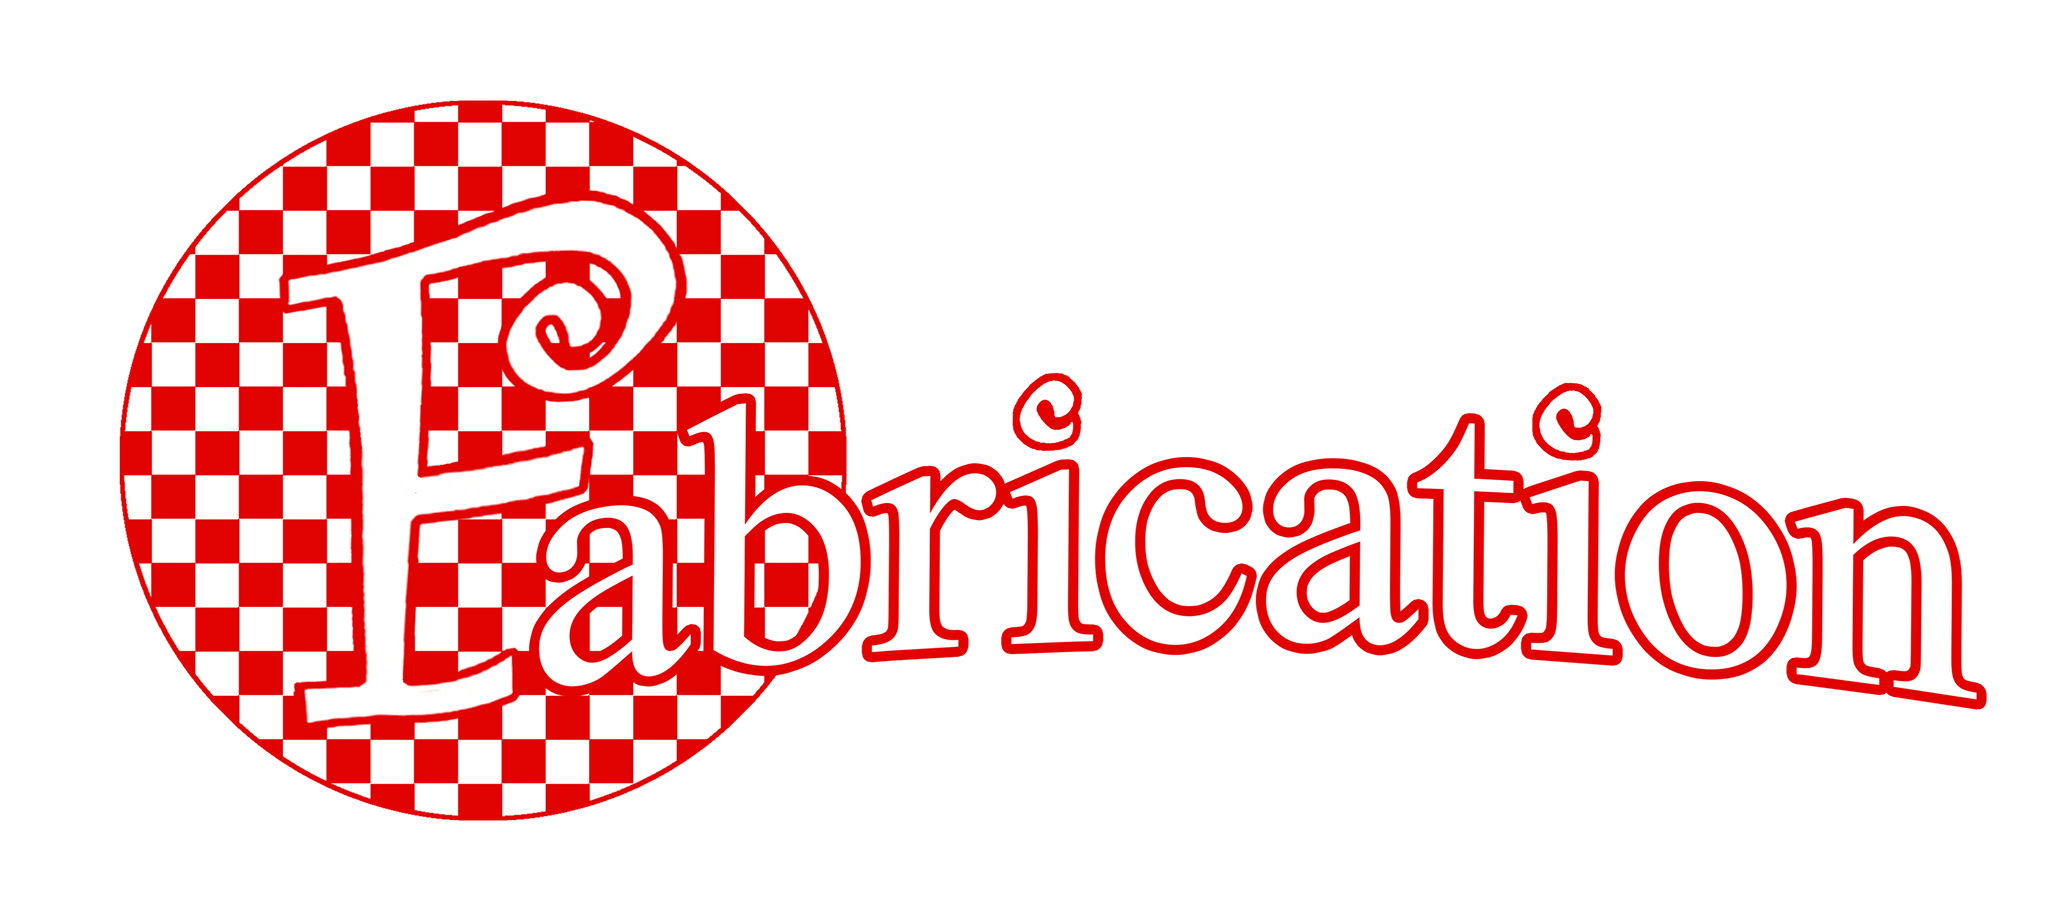 Fabrication Crafts Leeds, social enterprise, independent shop and creative workspace